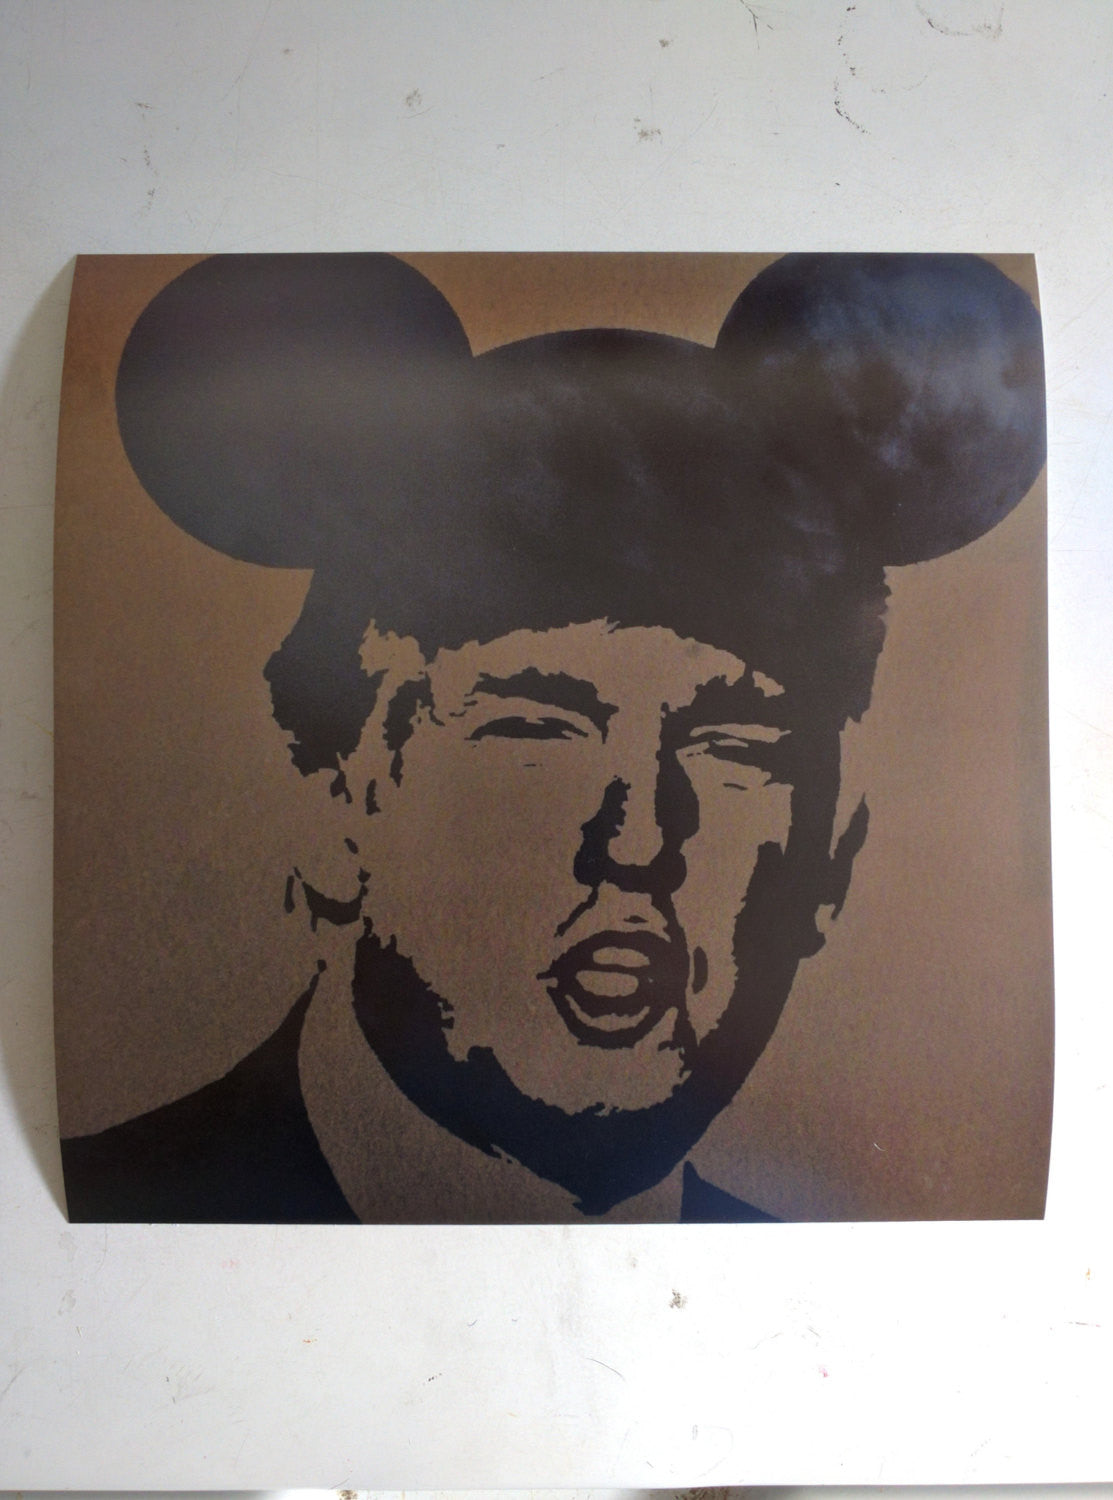 Operation Mickey Mouse Donald Trump Ltd. Print